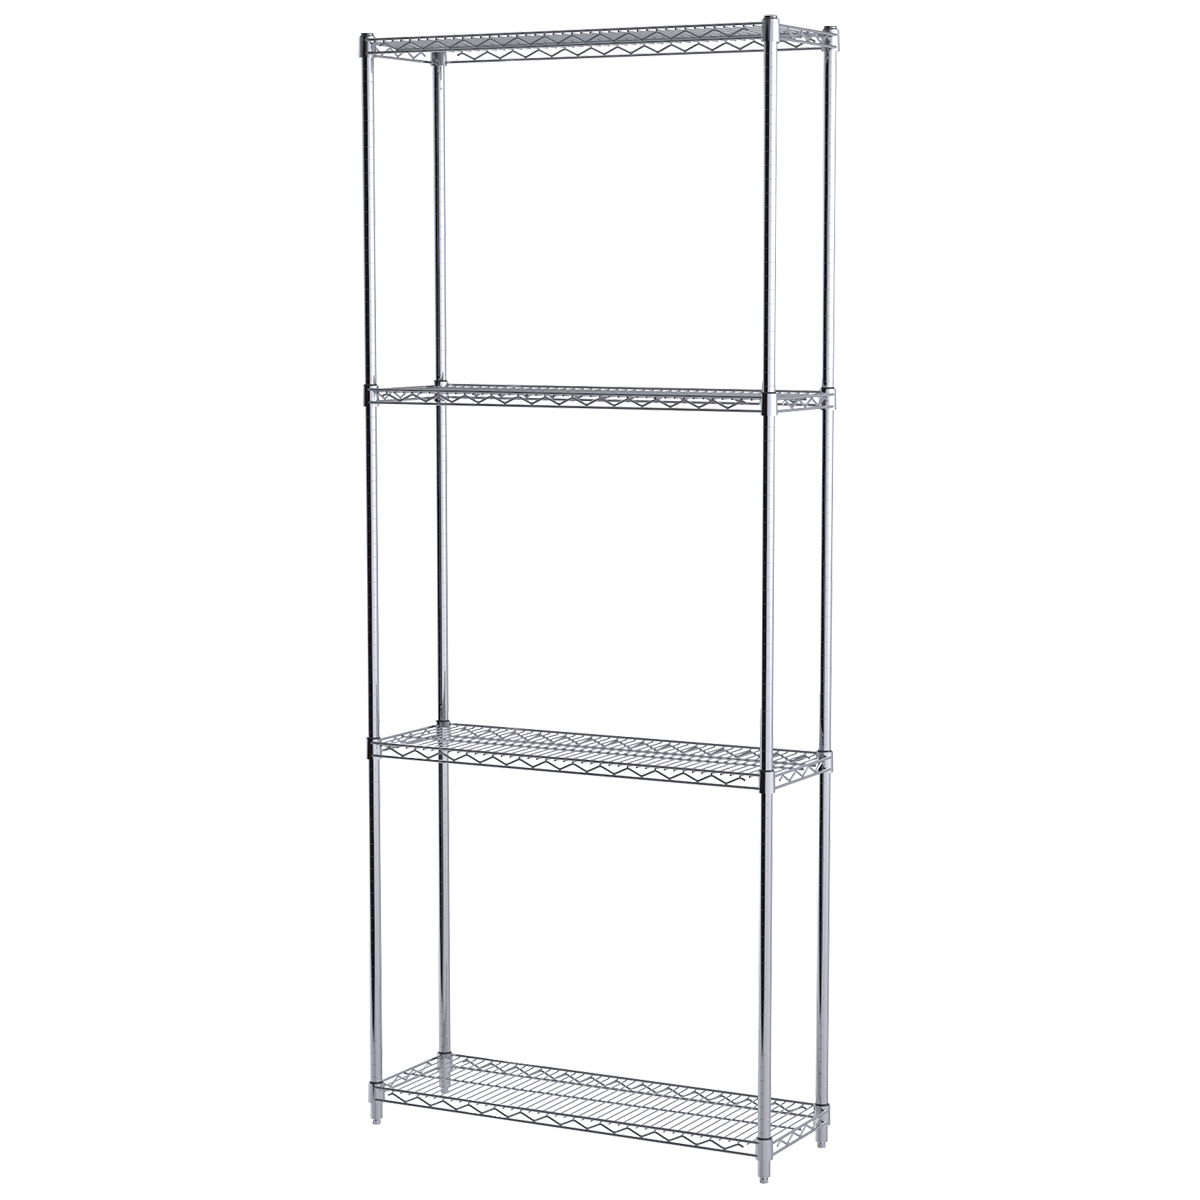 12x36x86, 4-Shelf Wire Shelving Starter Unit, Chrome.  This item sold in carton quantities of 1.